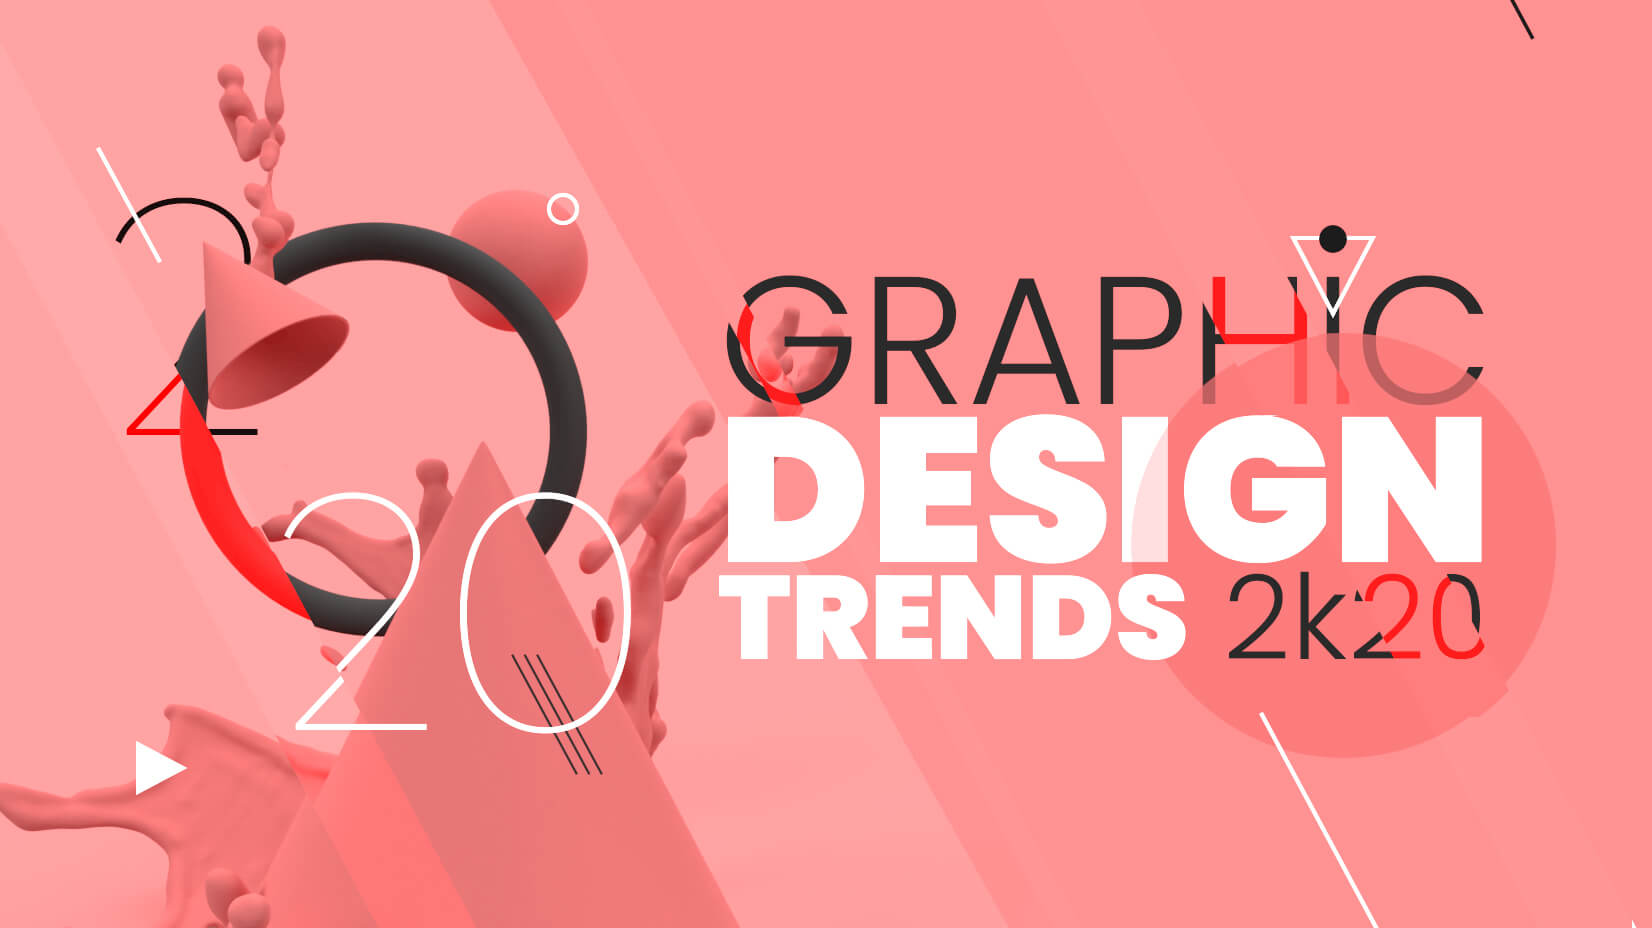 Graphic Design Trends 2020: Breaking the Rules